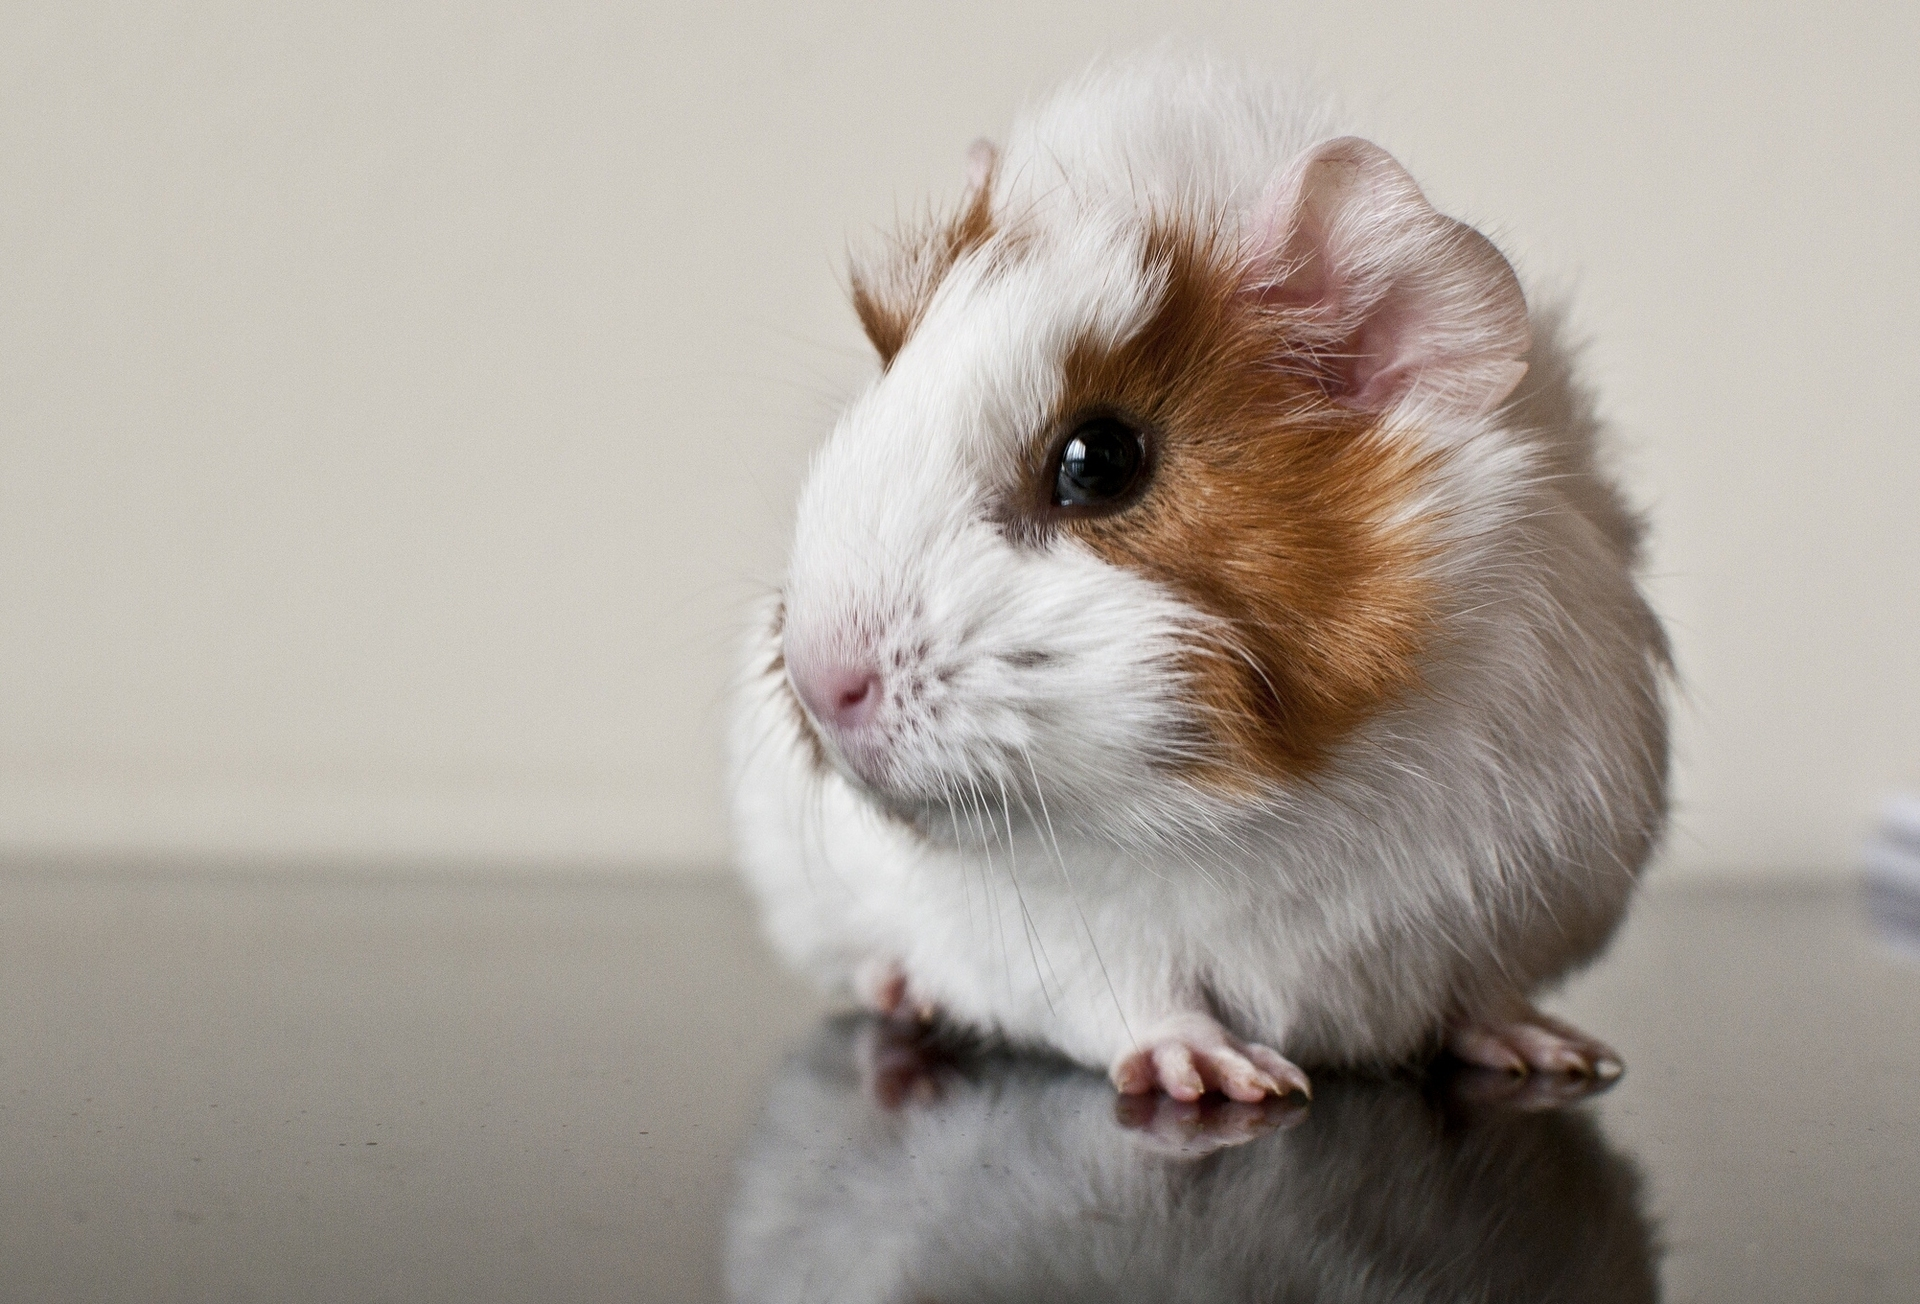 84518 download wallpaper Animals, Guinea Pig, Rodent, Spotted, Spotty screensavers and pictures for free